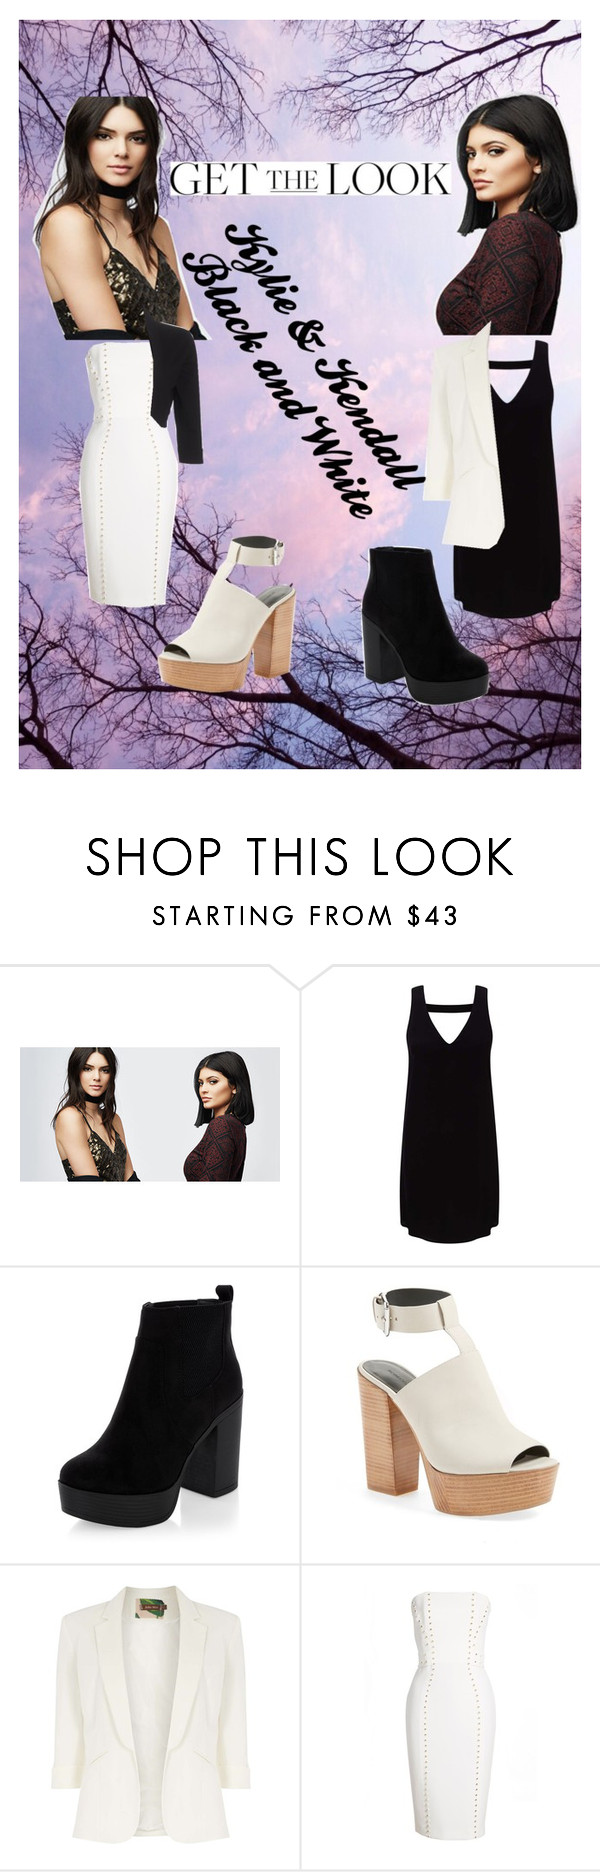 """Untitled #122"" by nikki-12-luv ❤ liked on Polyvore featuring PacSun, Miss Selfridge, New Look, Rebecca Minkoff, Jolie Moi, Versace, Phase Eight, GetTheLook and celebritysiblings"